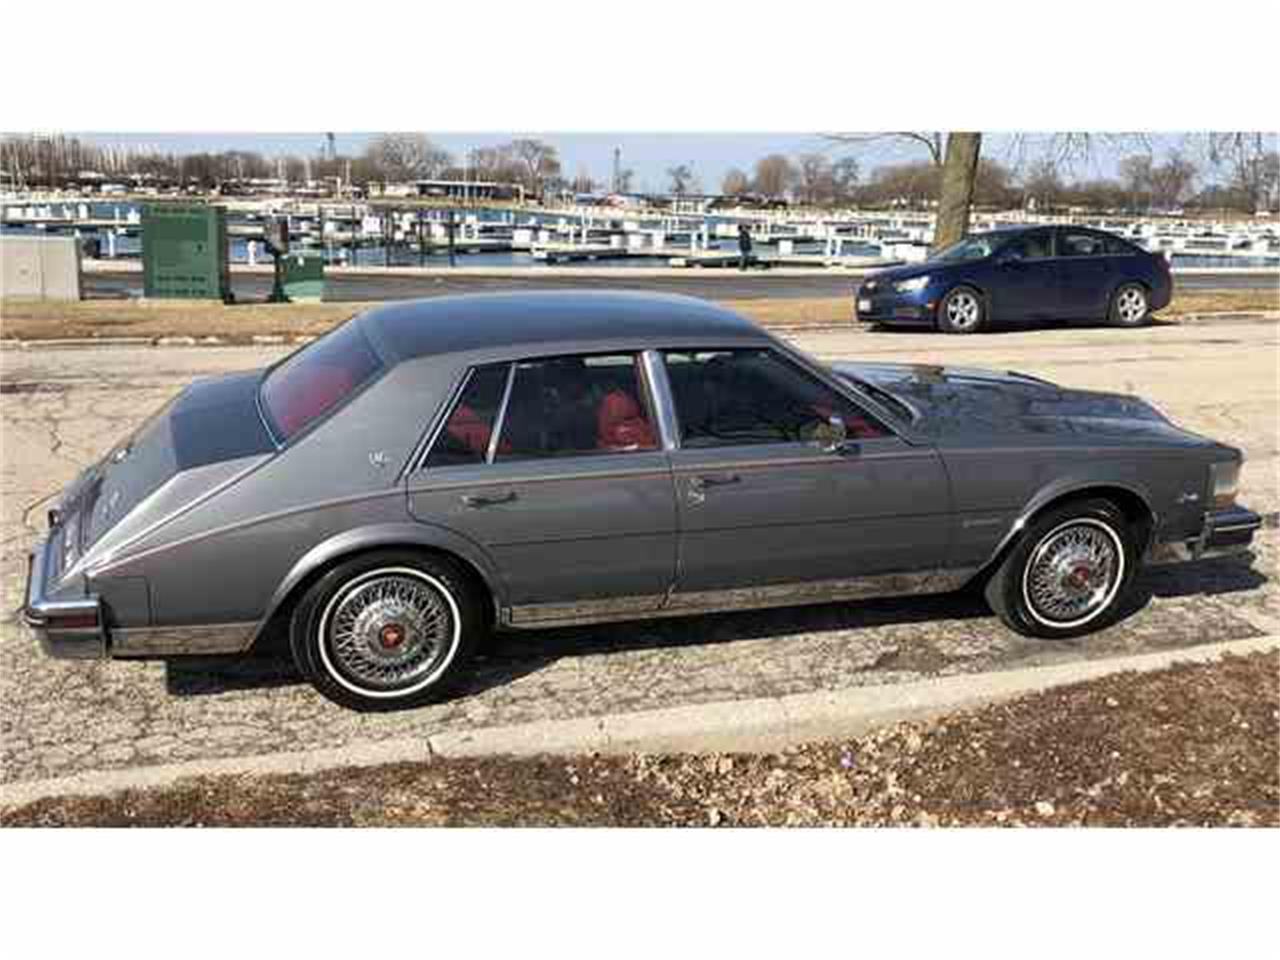 1985 Cadillac Seville For Sale Classiccars Com Cc 1106736